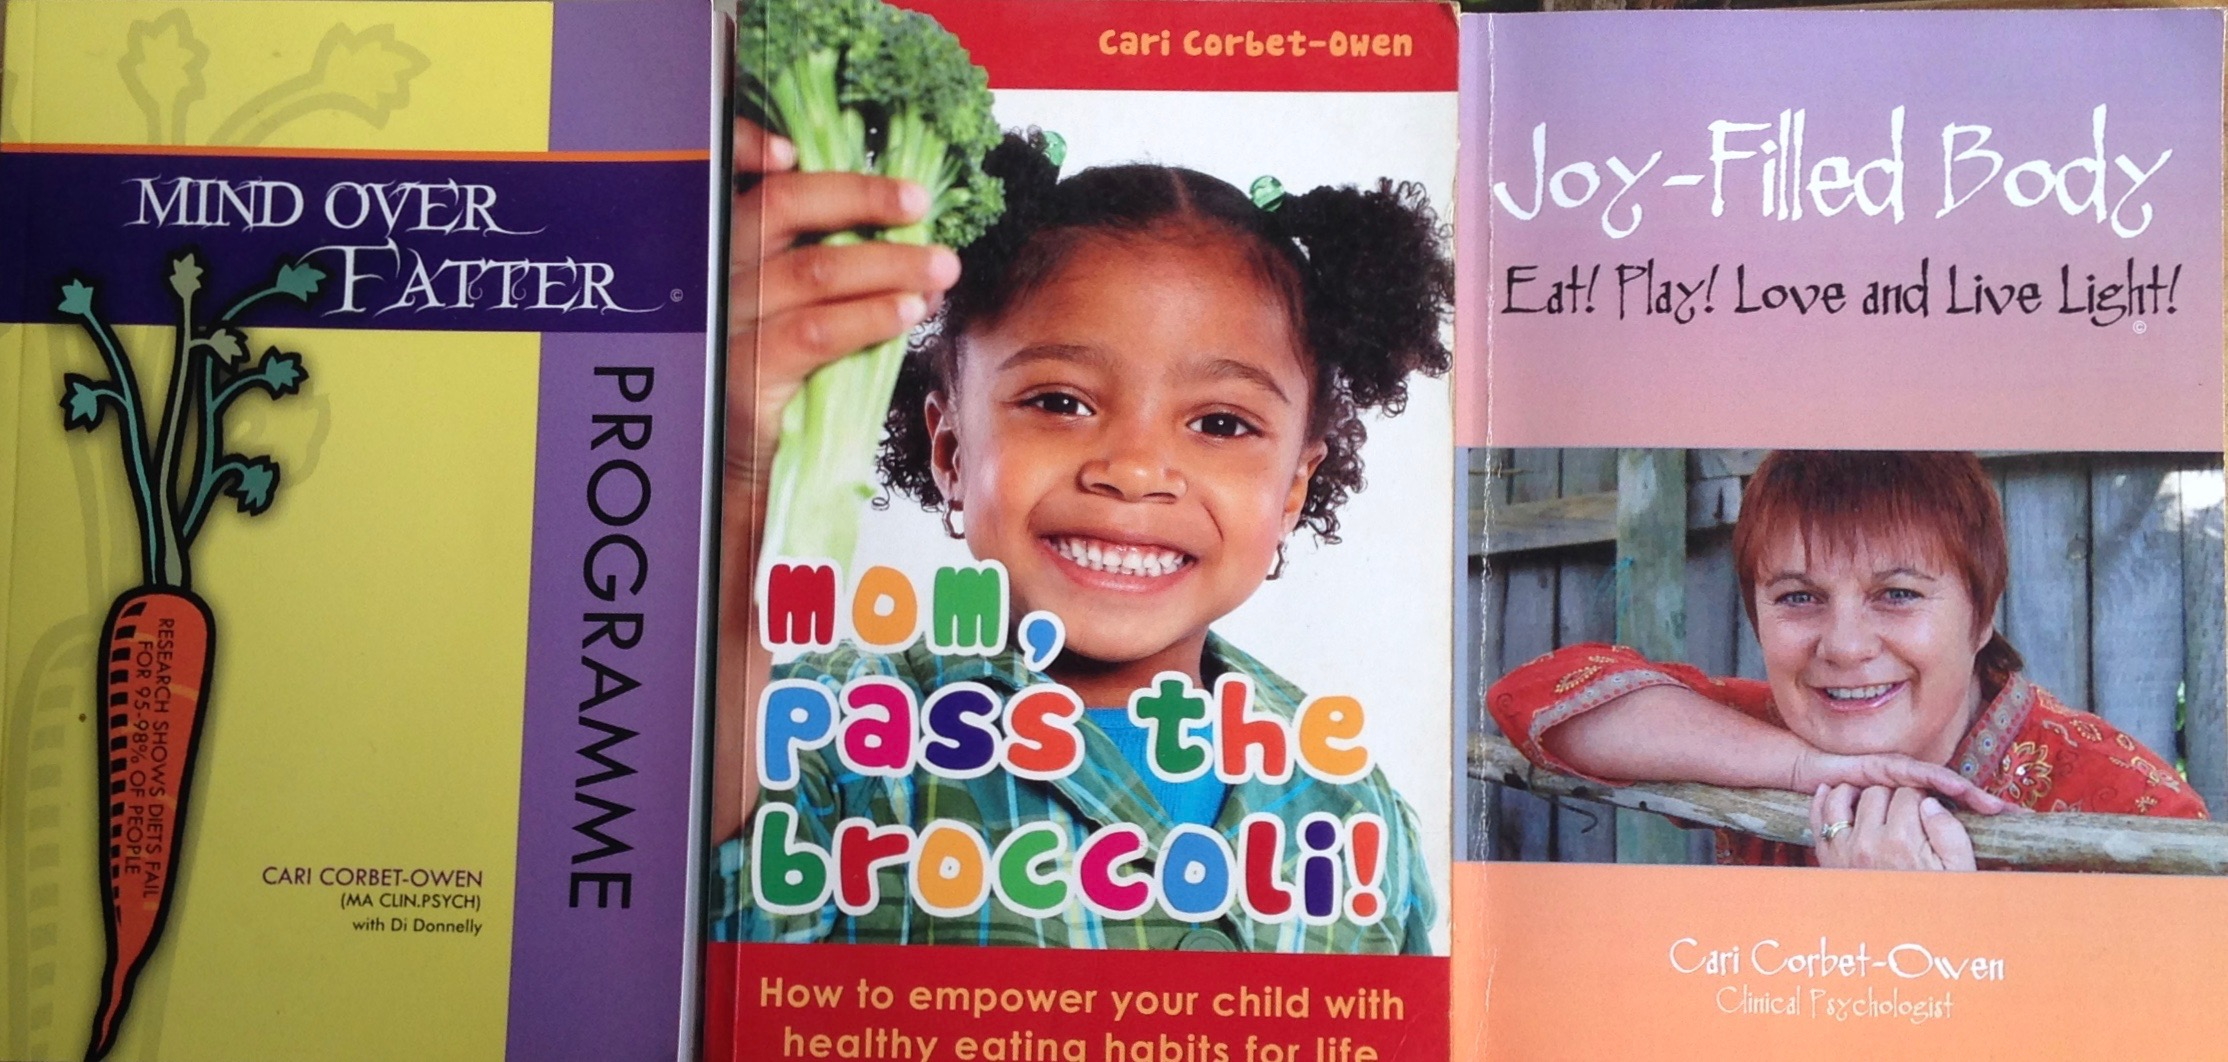 mind over fatter, mom pass the broccoli, the joy-filled body.